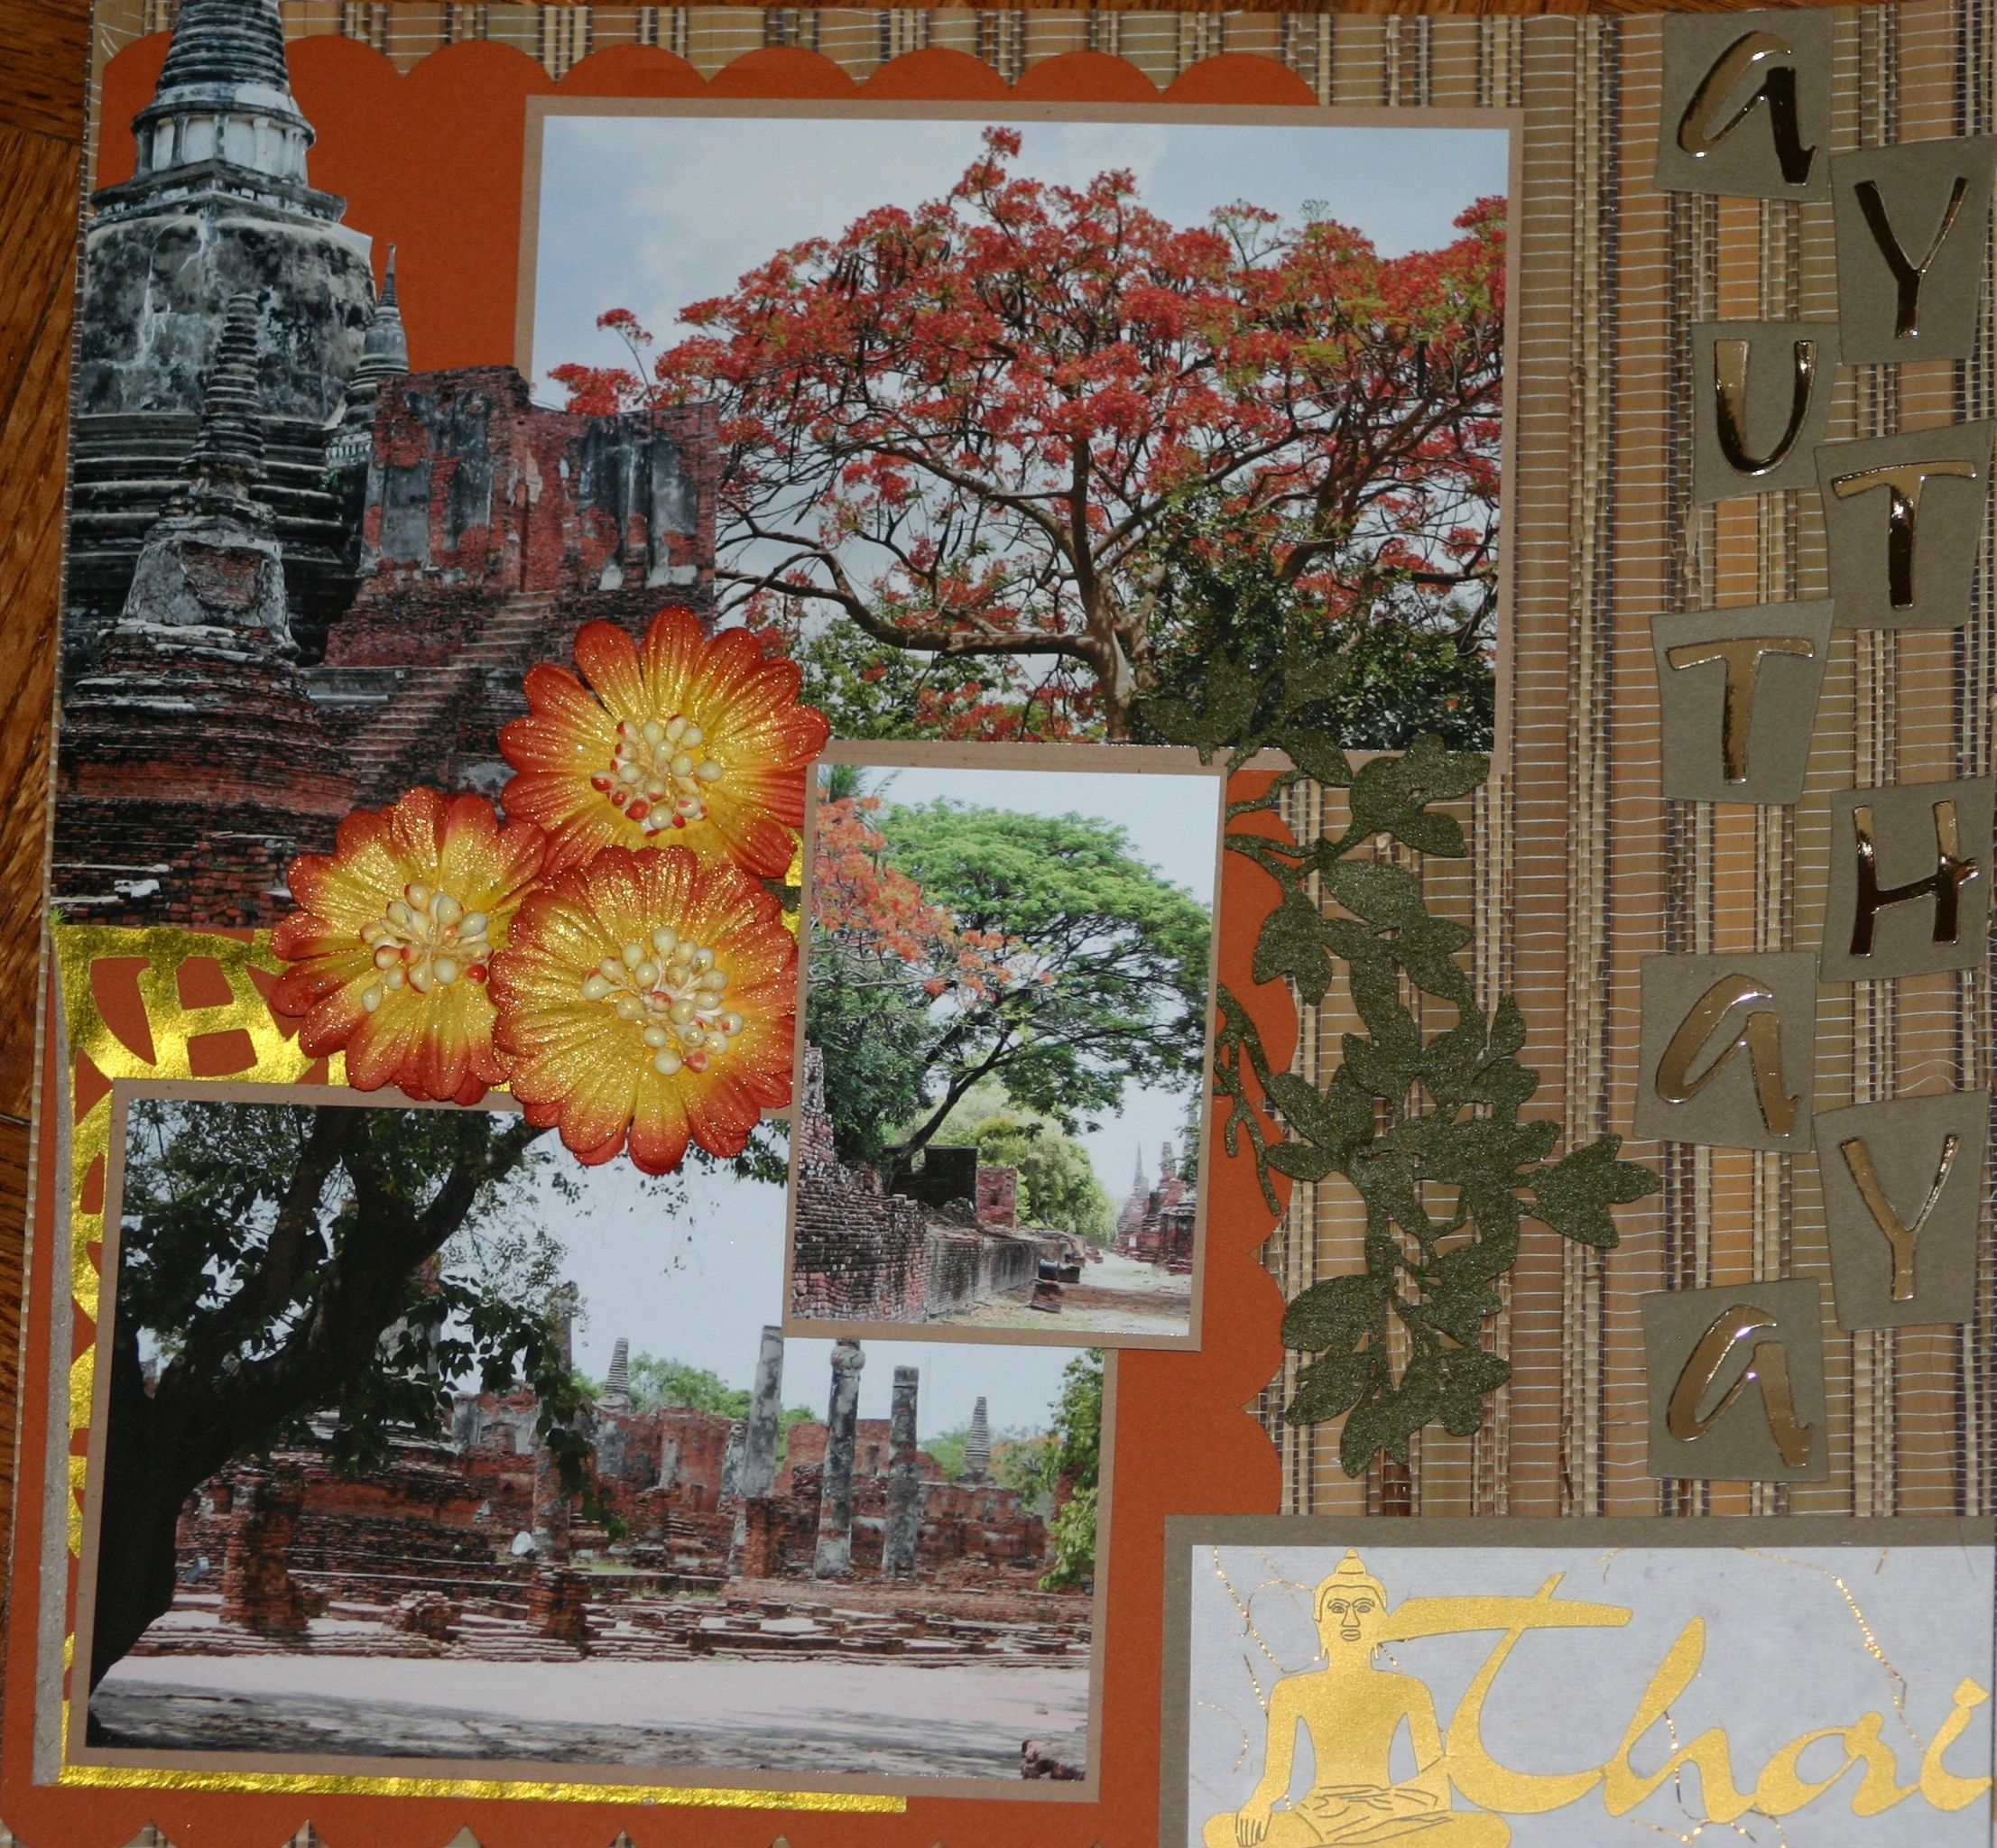 Vietnam scrapbook ideas - Scrapbook Page 1of 2 Thailand Ayuttaya All Products Used Were From Thailand